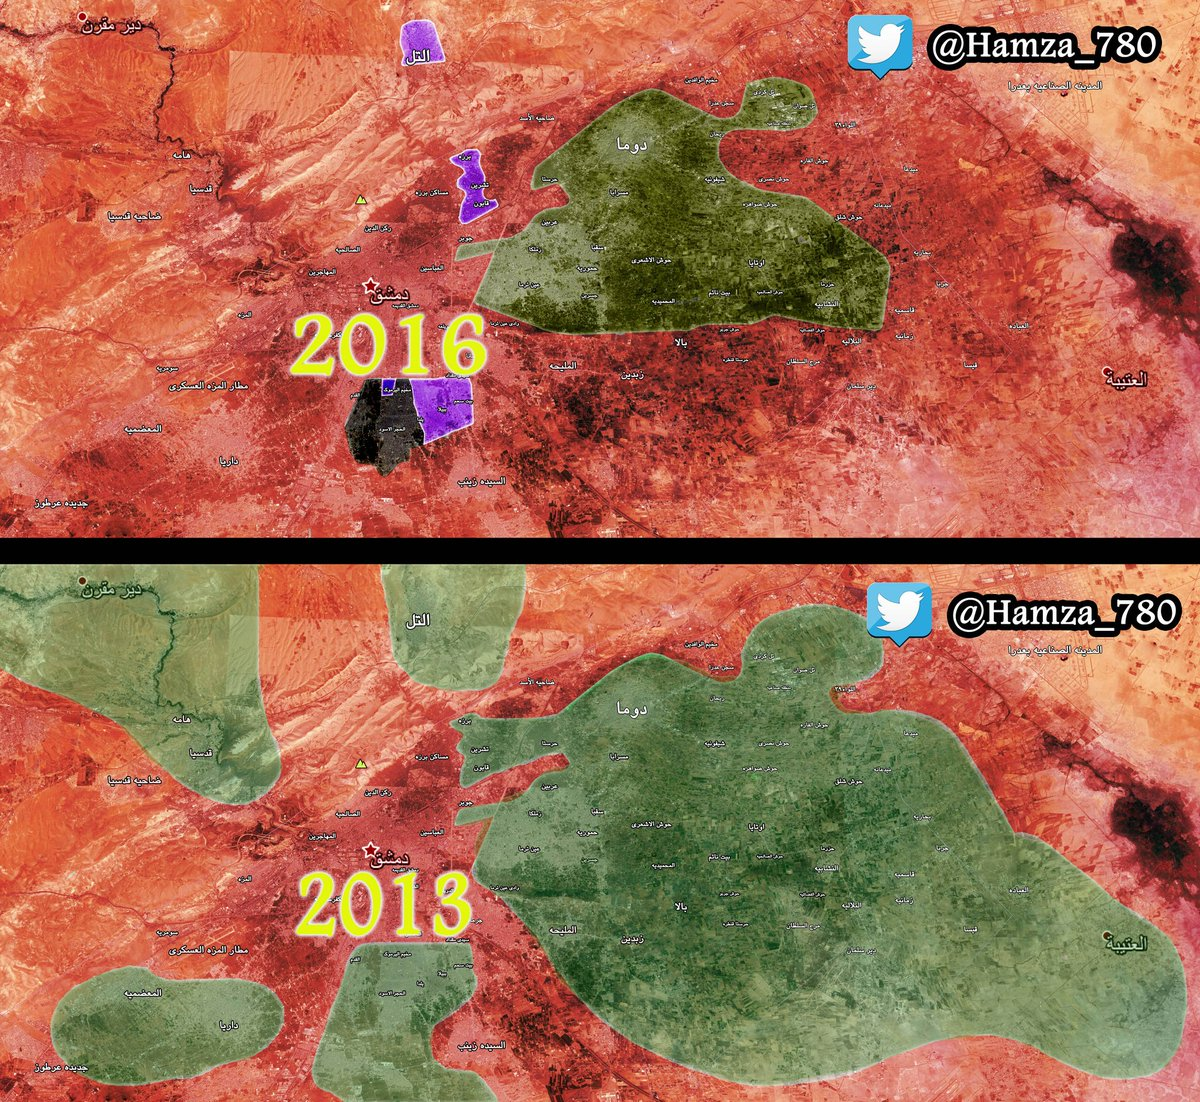 Map Comparison: Damascus Countryside in 2013 and in 2016